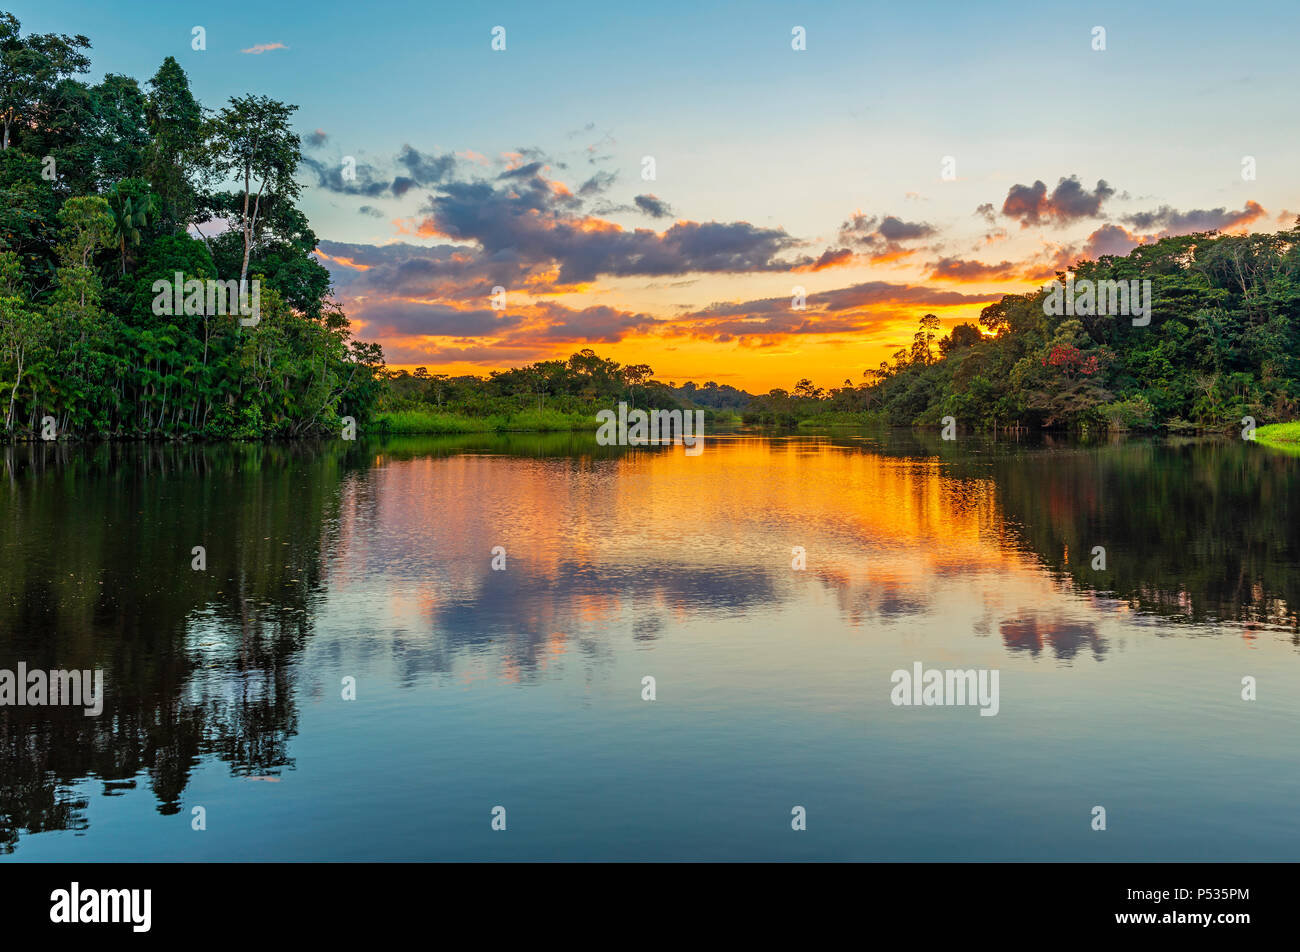 Reflection of a sunset in the Amazon Rainforest Basin. The countries of Brazil, Bolivia, Colombia, Ecuador, Peru, Venezuela, Guyana and Suriname. - Stock Image